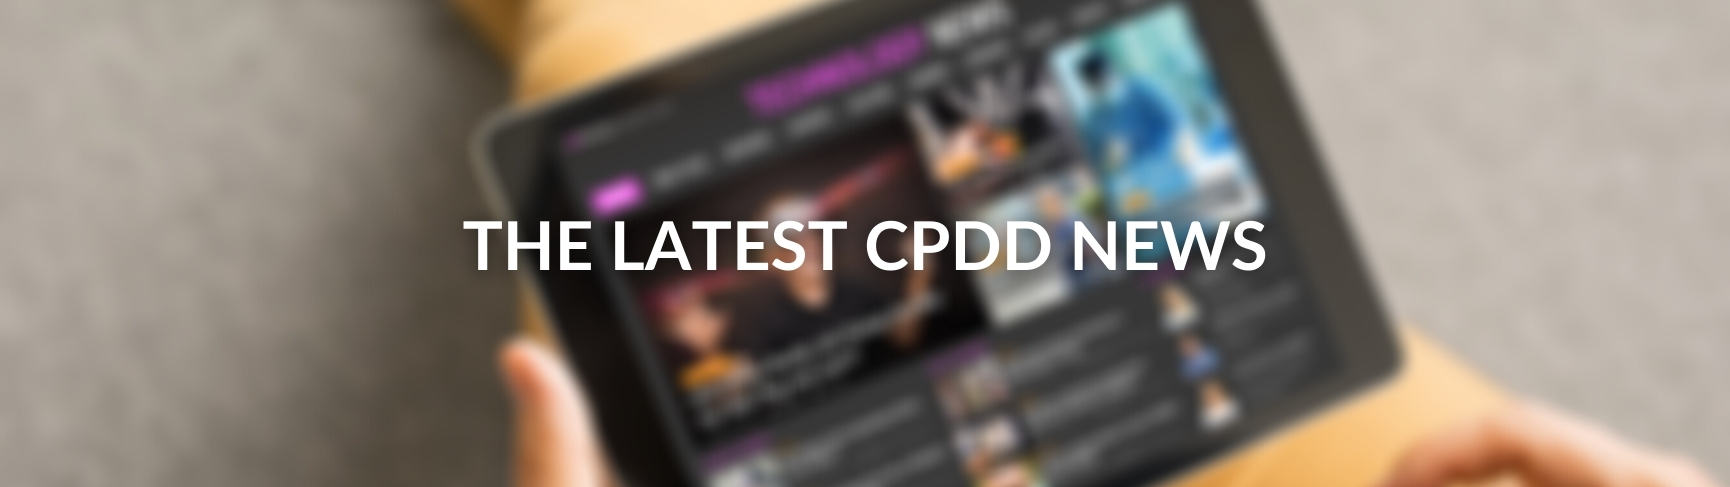 THE LATEST CPDD NEWS